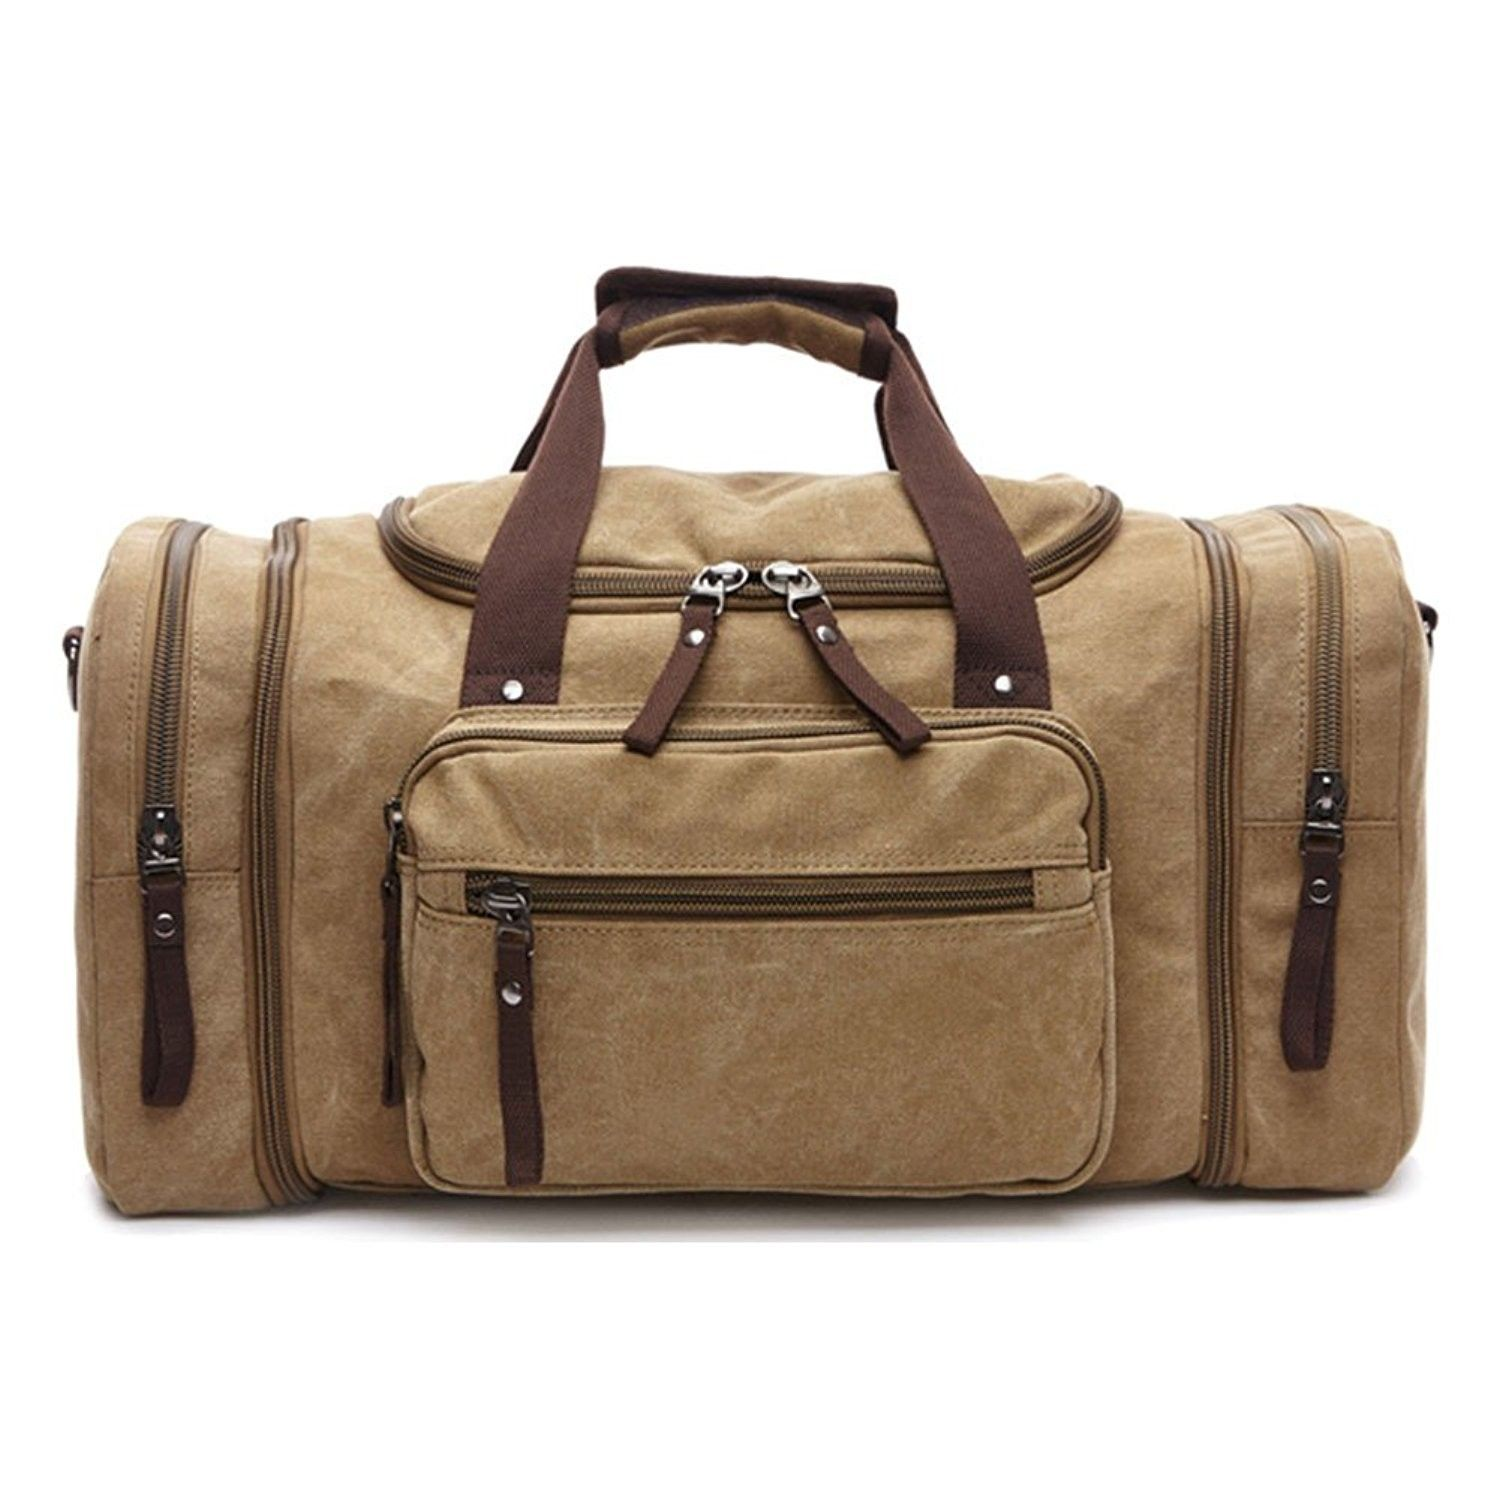 Canvas Weekend Tote Bag Extra Large Weekender Luggage Travel Duffle ... e32dd0fcda042